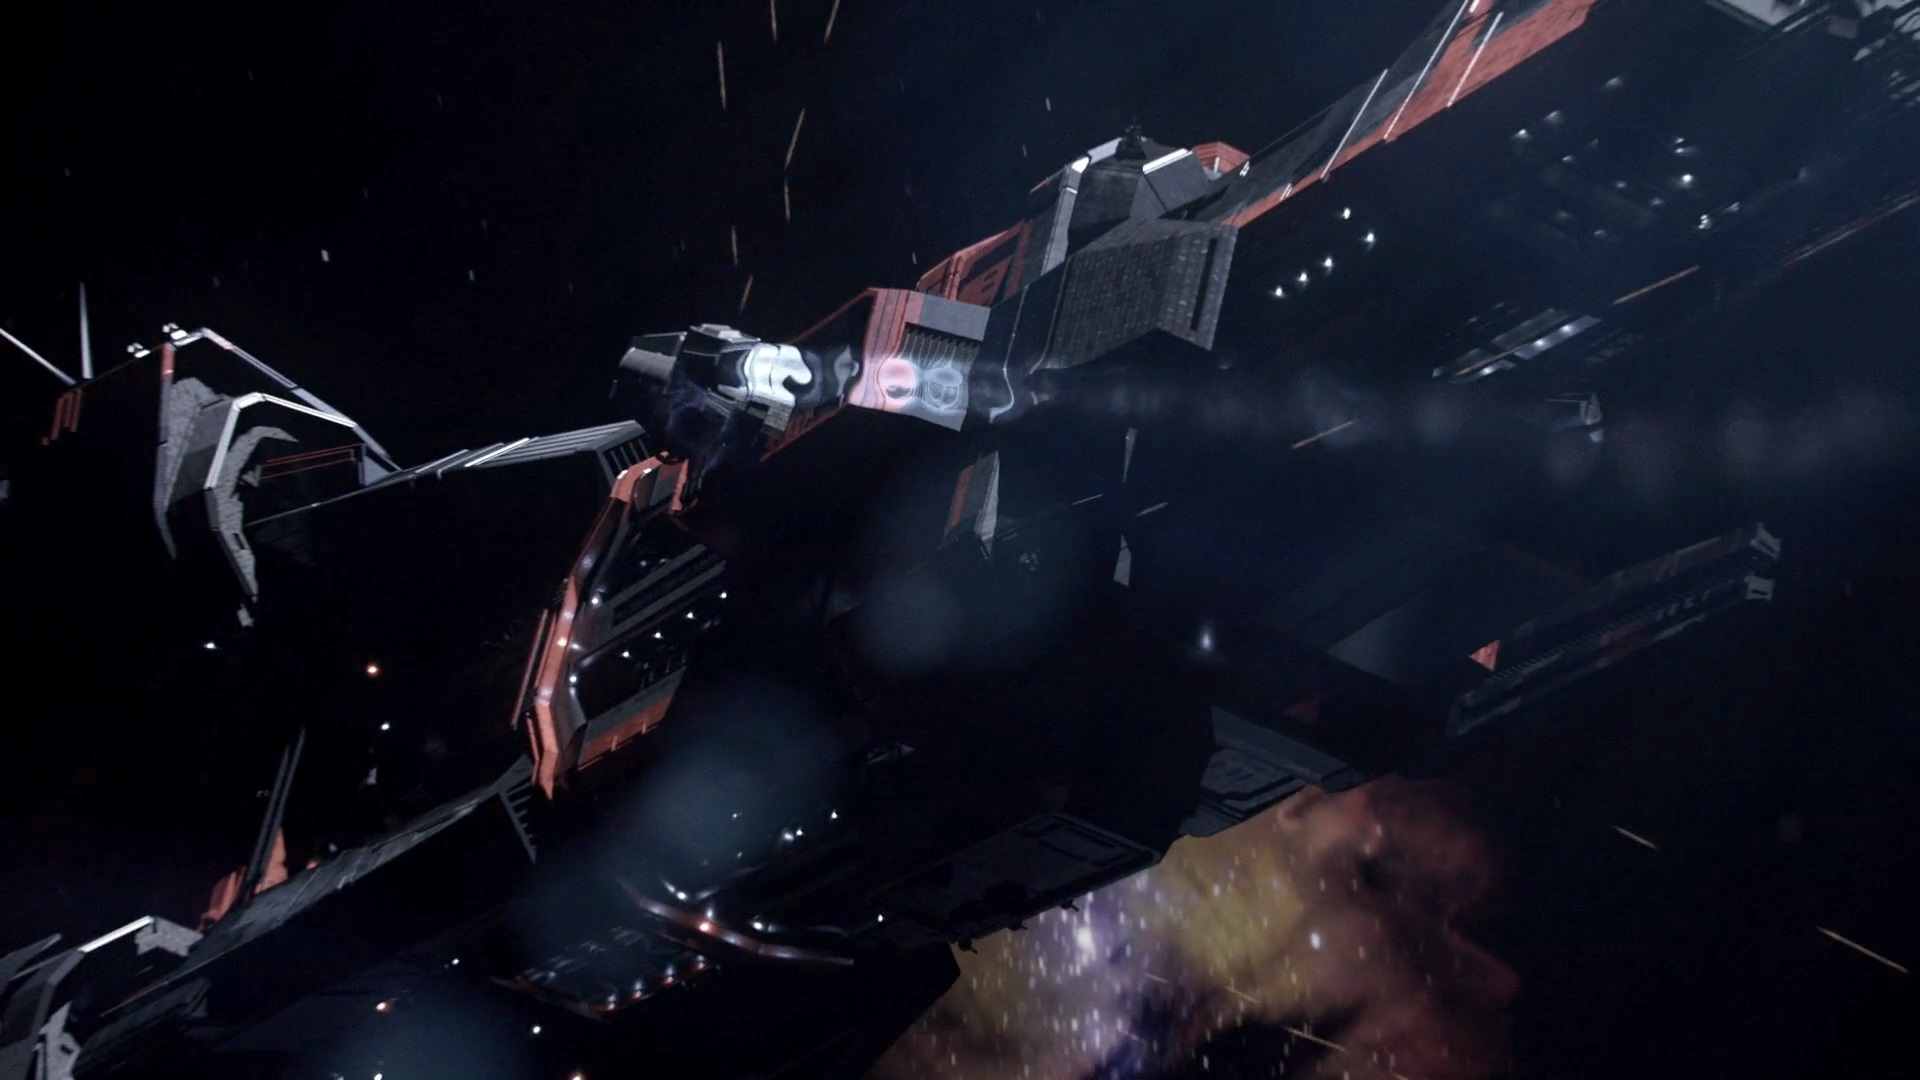 The Expanse Wallpapers (33 Wallpapers) - Adorable Wallpapers